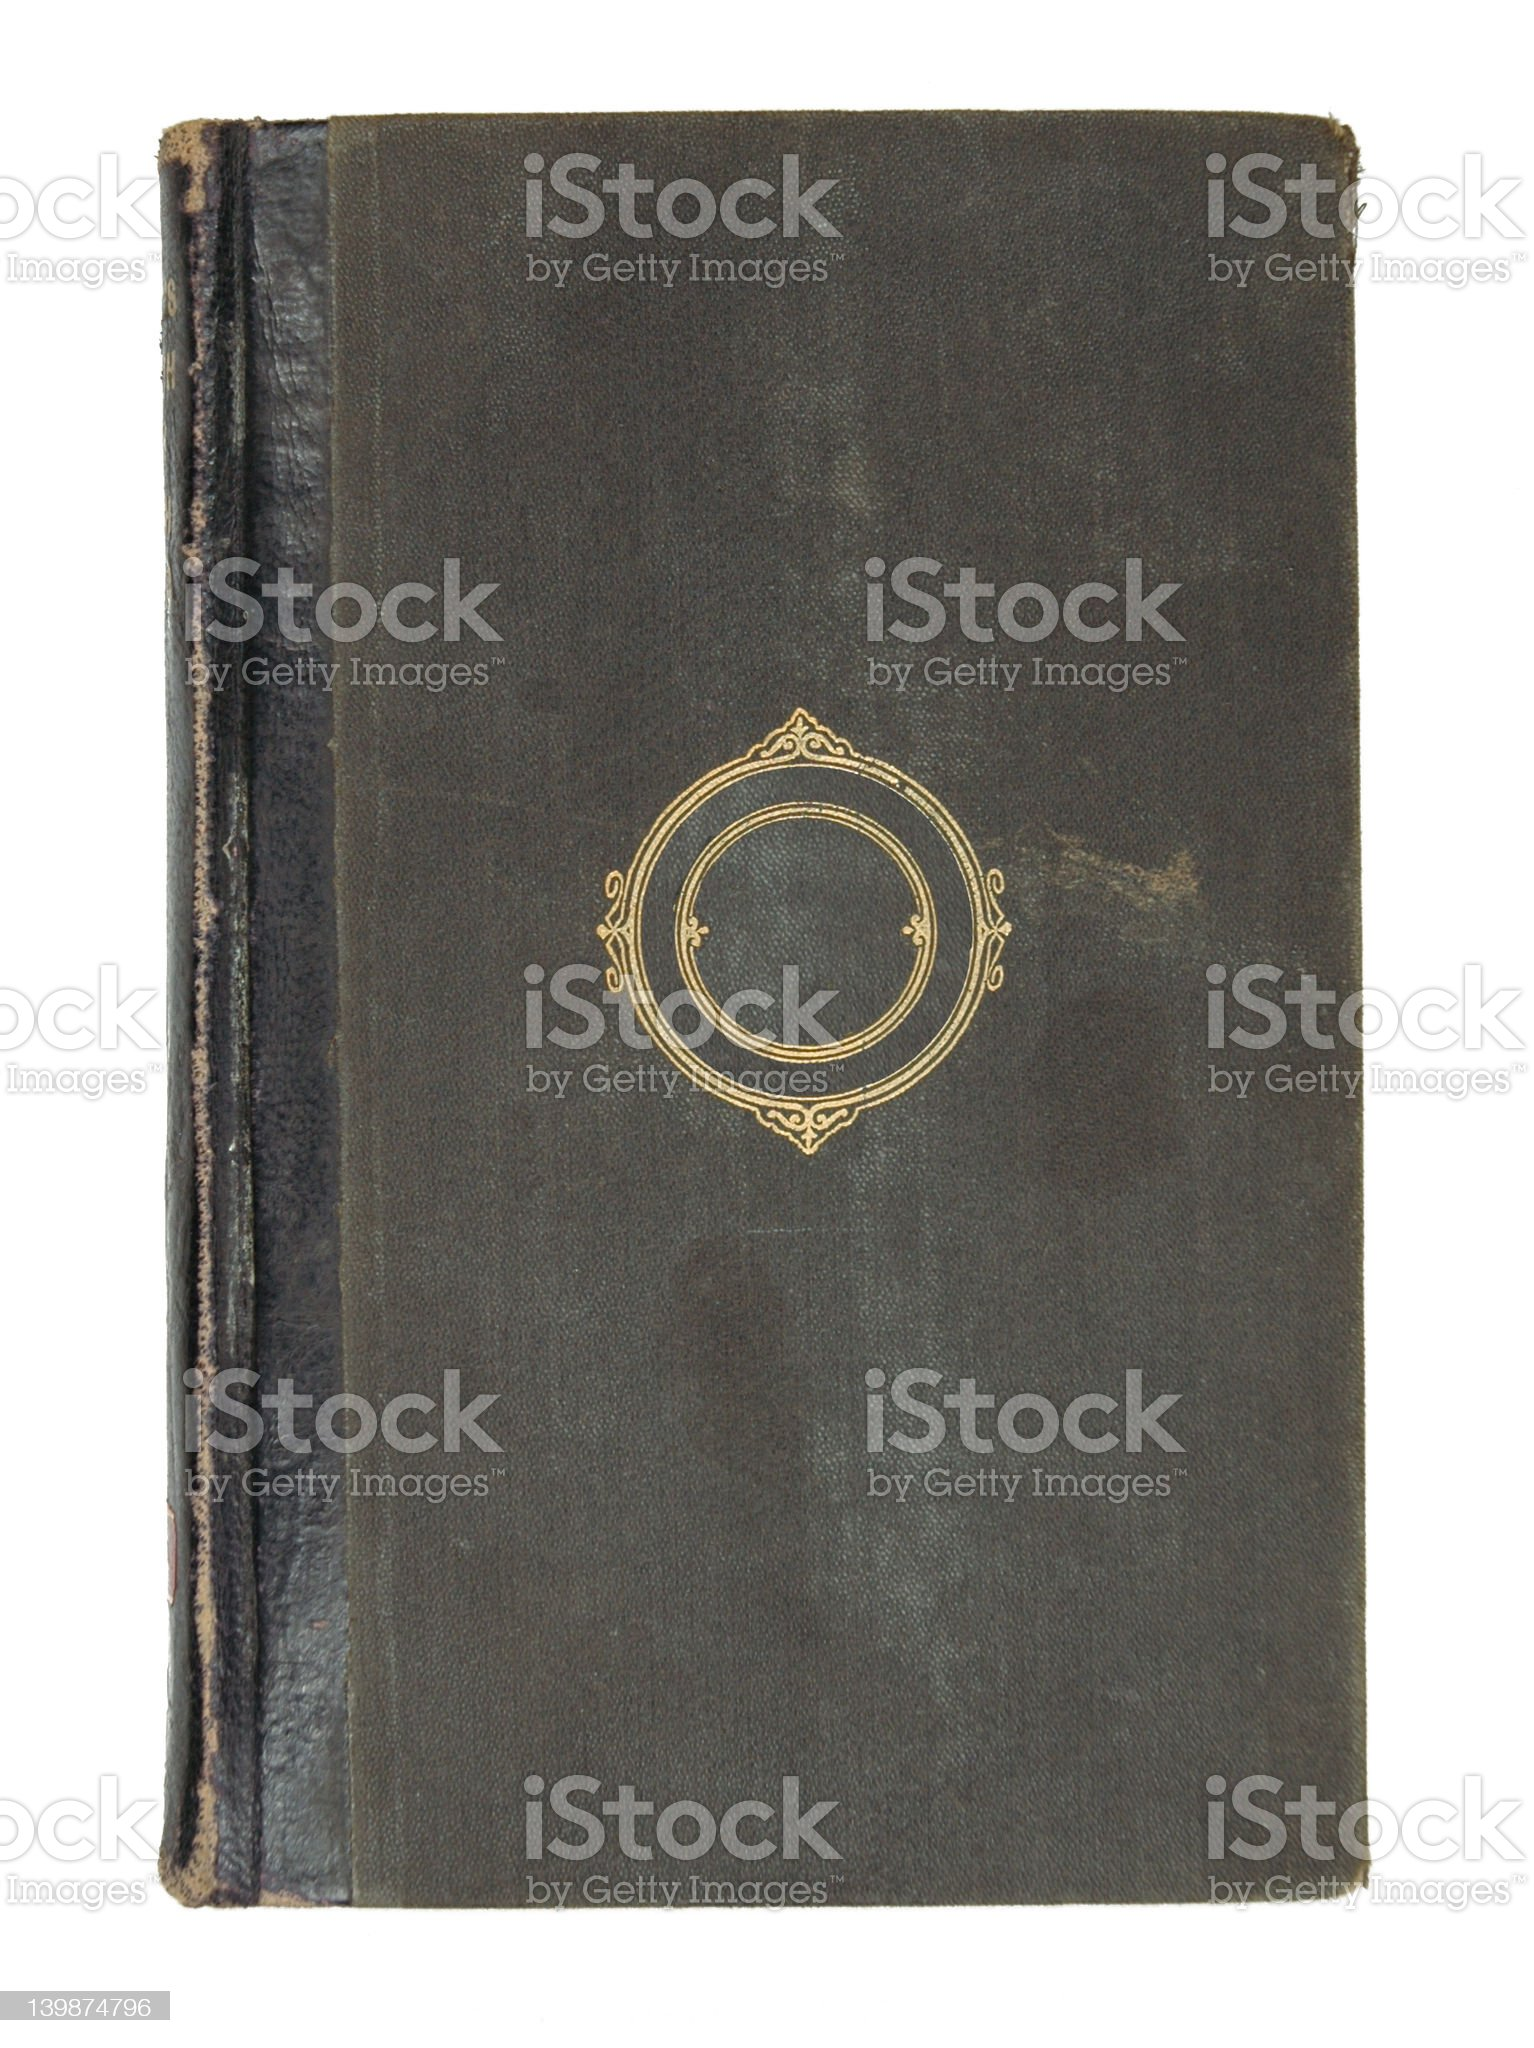 Antique Black Book royalty-free stock photo